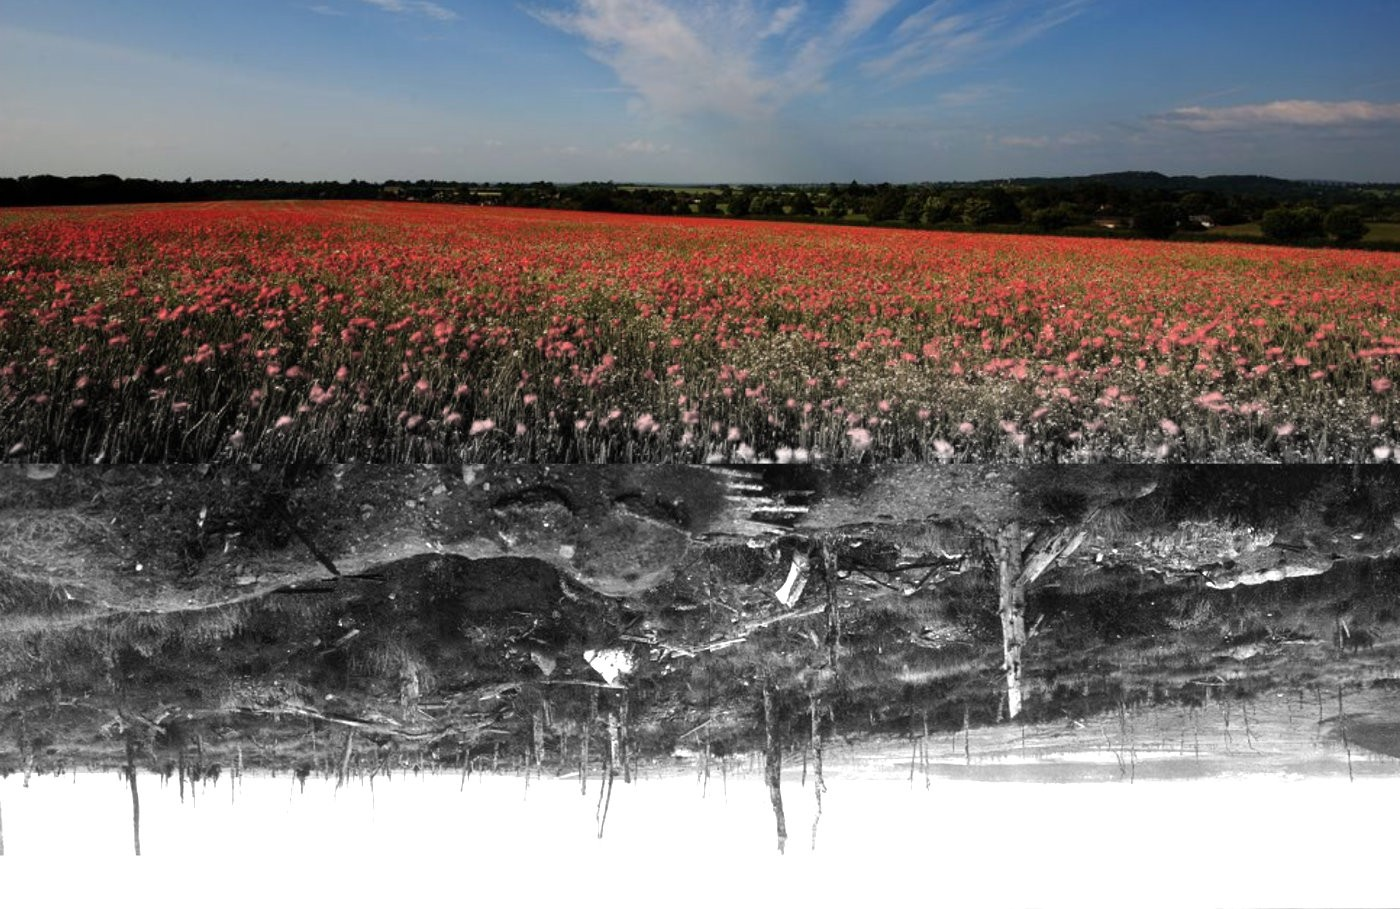 contrasting image of Flanders Fields in war and peace